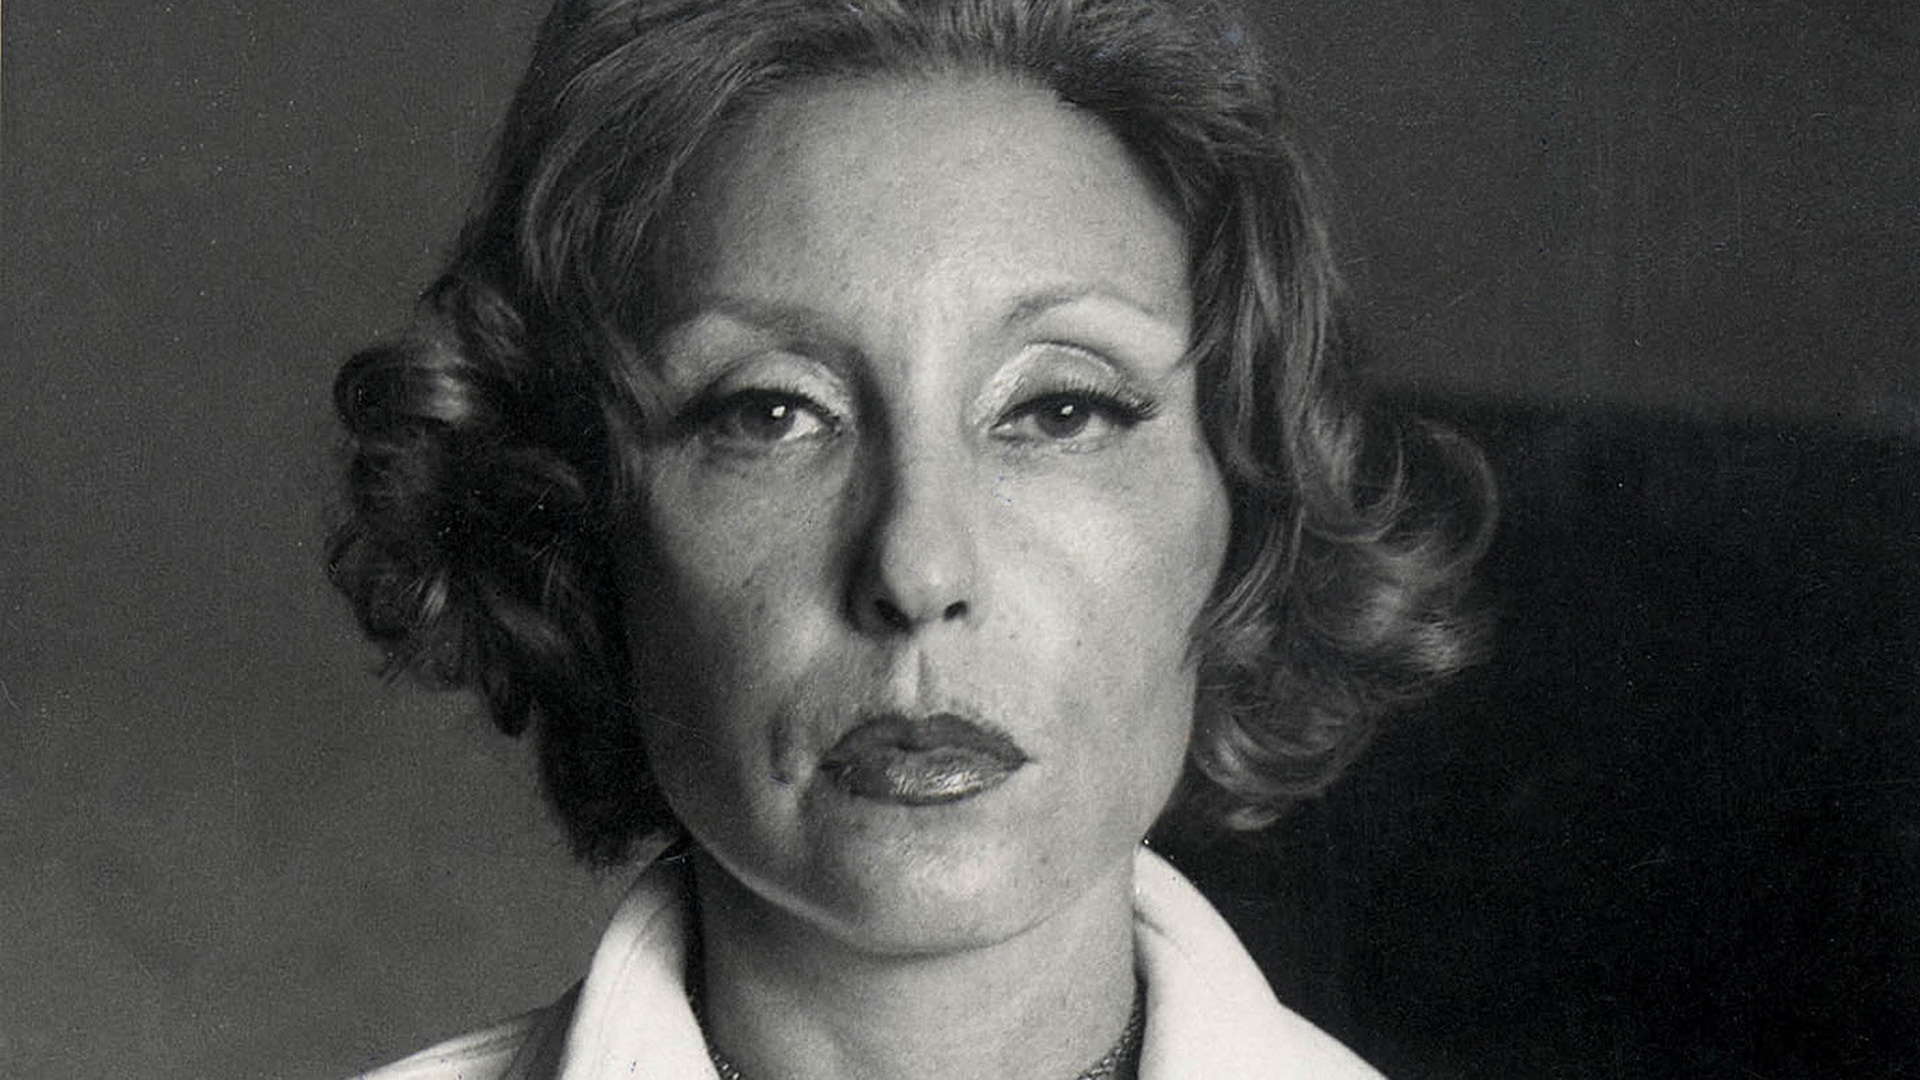 preciousness clarice lispector The hour of the star, clarice lispector's consummate final novel, may well be her masterpiece narrated by the cosmopolitan rodrigo sm, this brief, strange, and haunting tale is the story of macabéa, one of life's unfortunates.